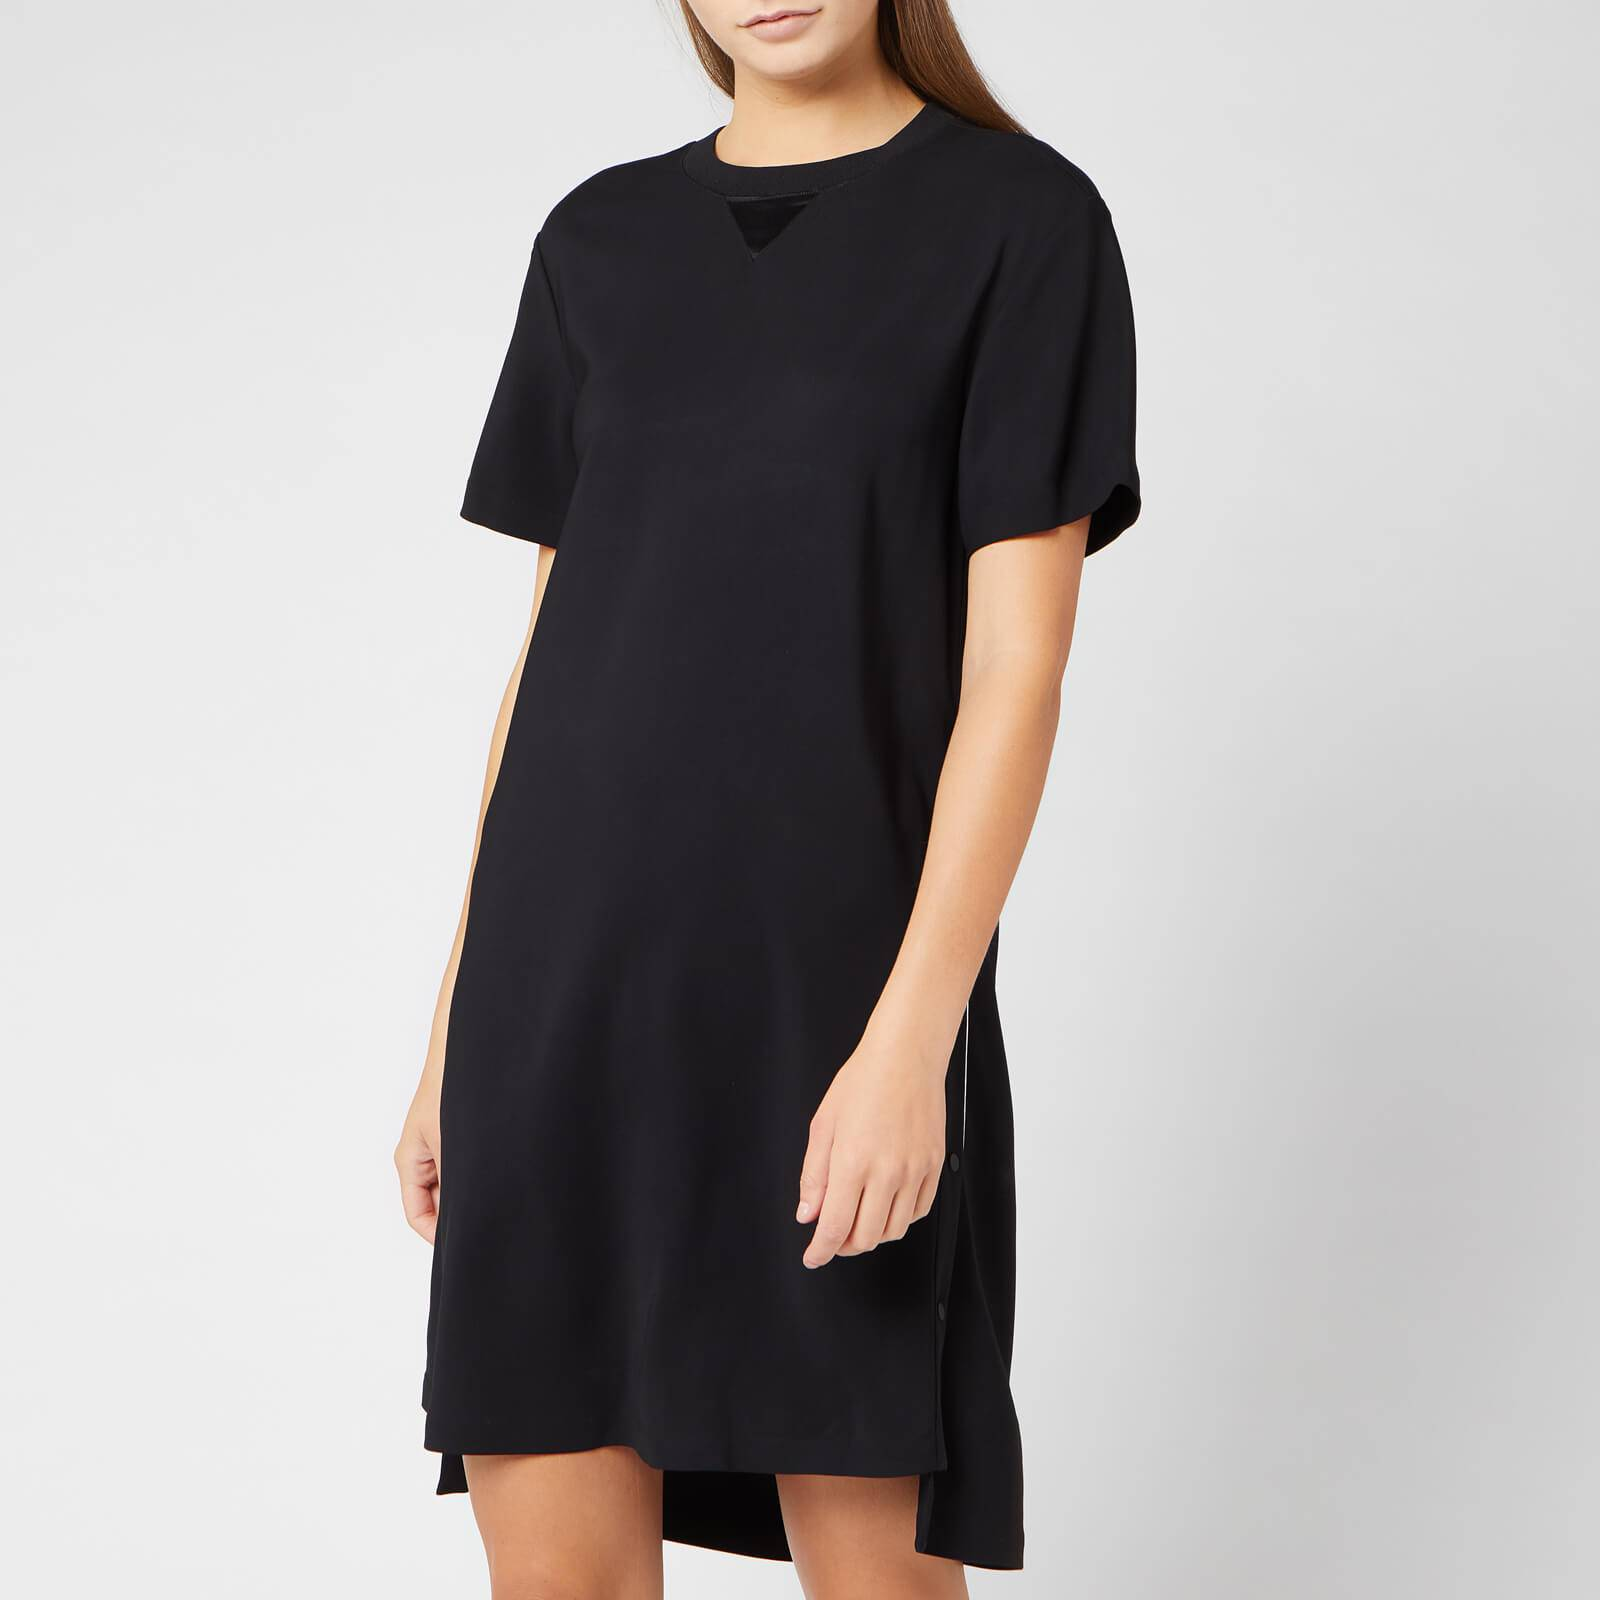 Karl Lagerfeld Women's Dress with Snap Sides - Black - IT 40/UK 8